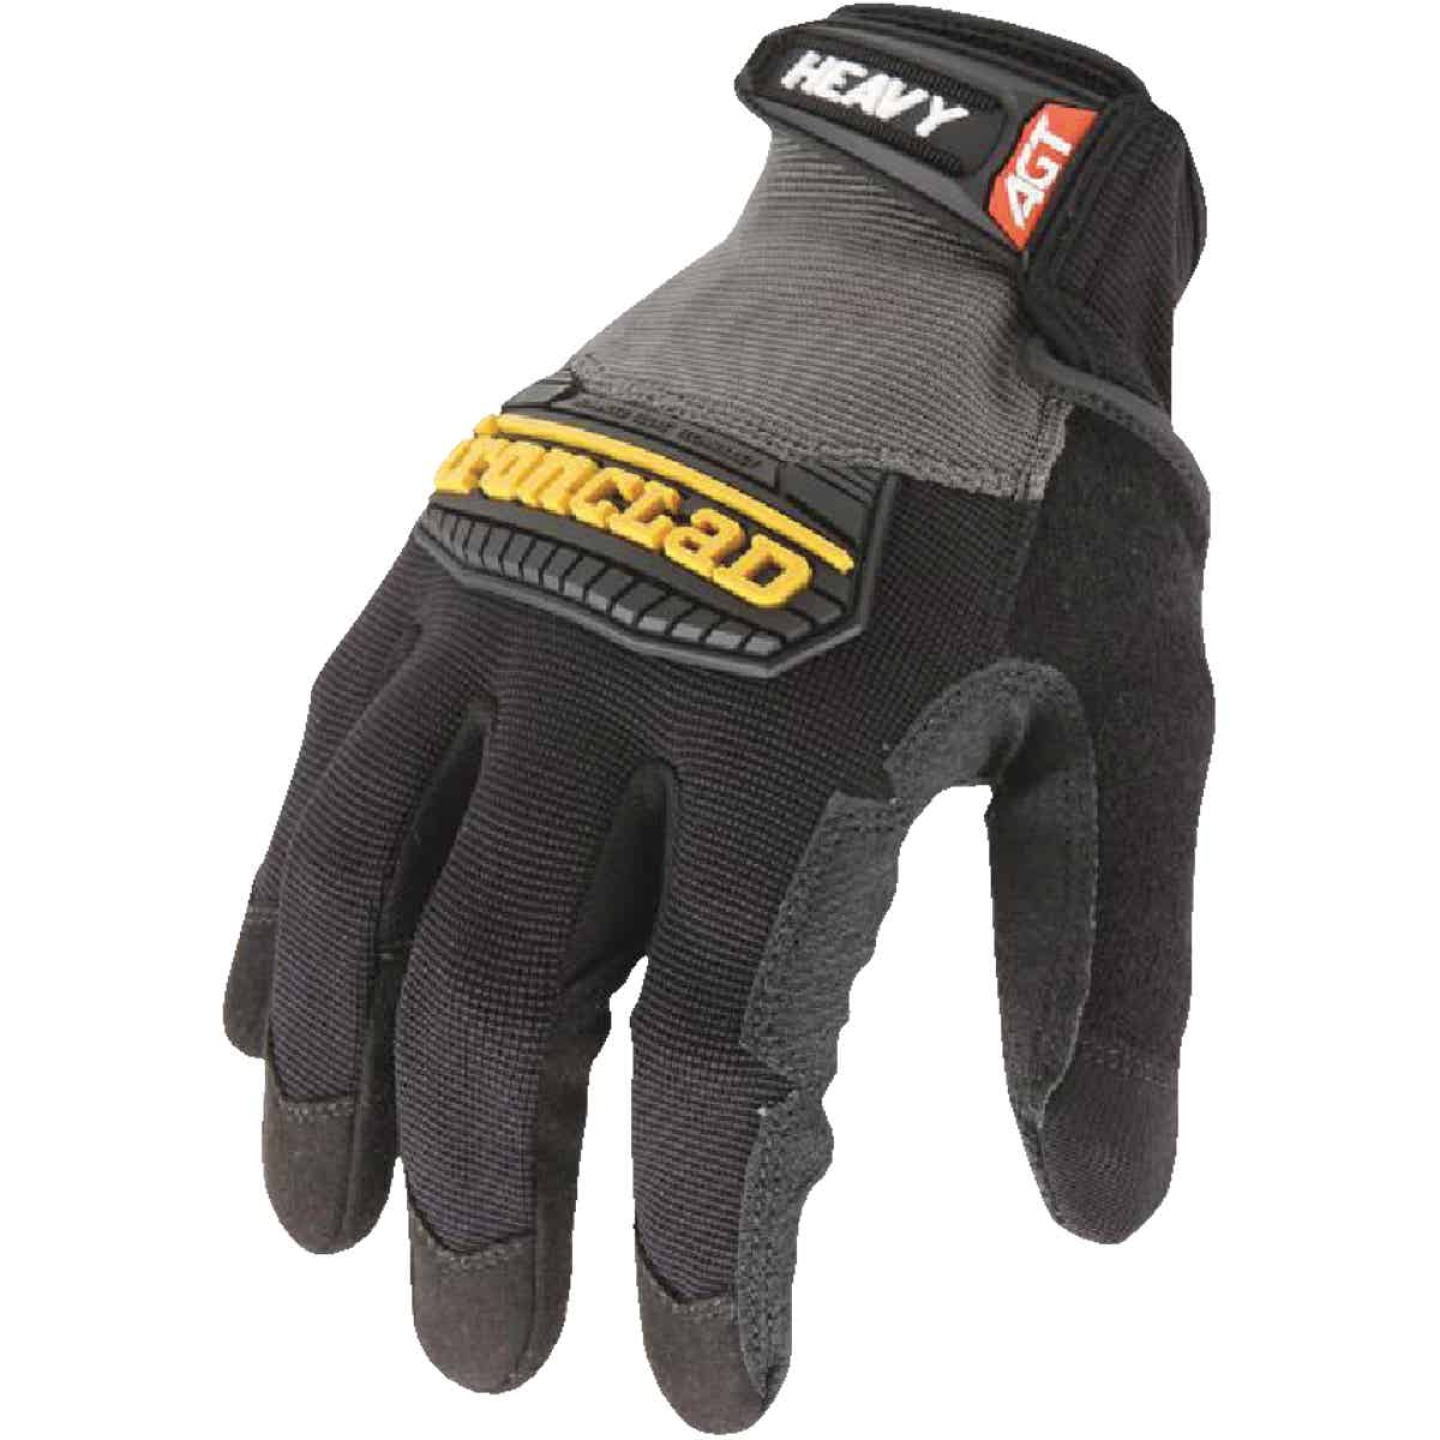 Ironclad Heavy Utility Men'sLarge Synthetic Leather High Performance Glove Image 4